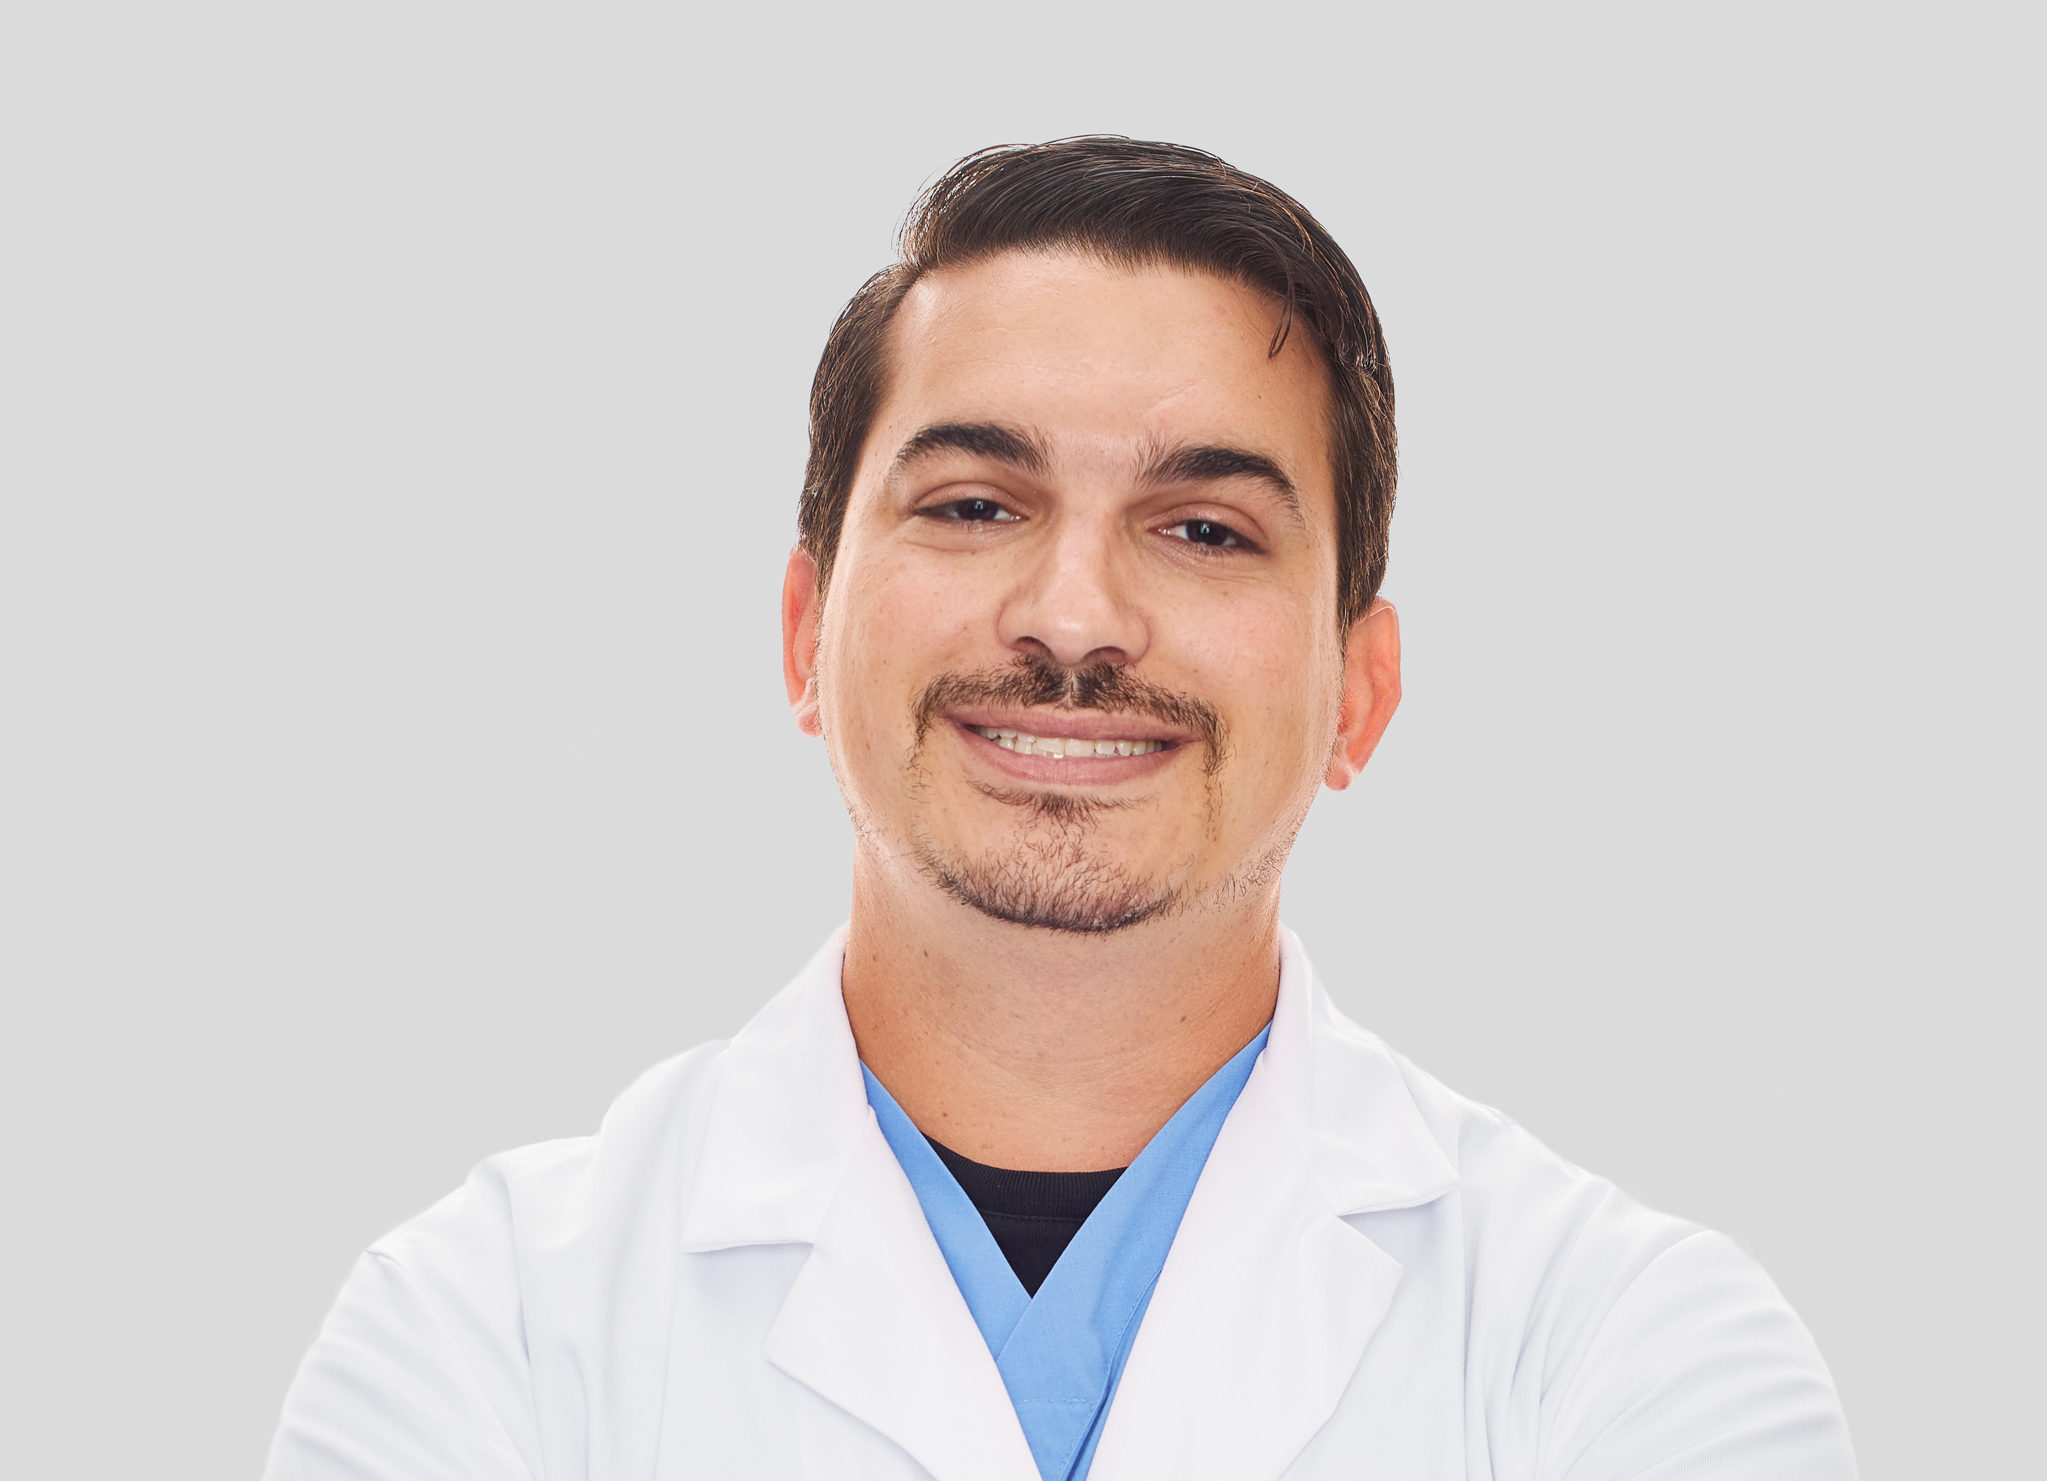 Dr. Brett Harling of the Animal Medical Center in New York City